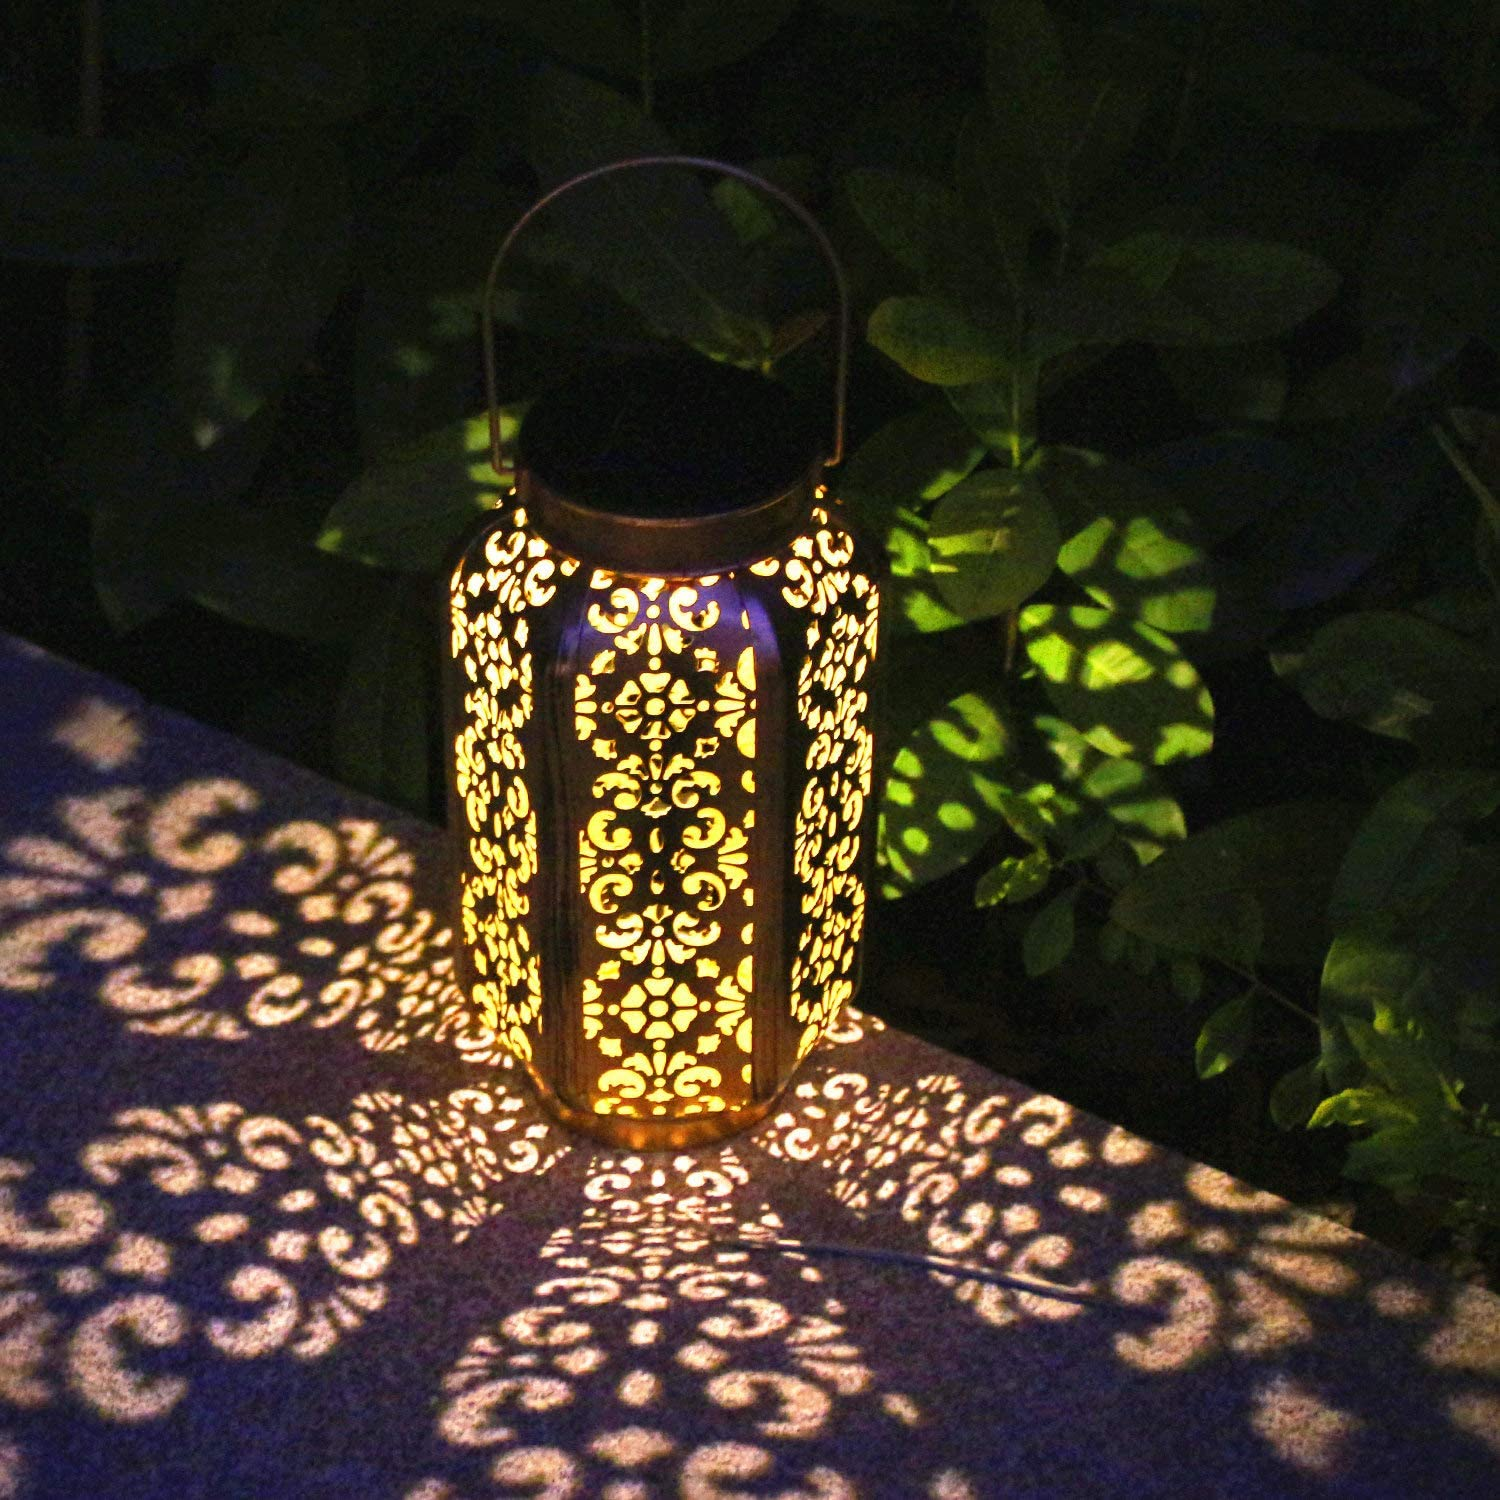 FastDeng Solar Lantern Lights for Hanging or Table Outdoor, Waterproof Solar Garden Light for Patio Yard Decorations (1 Pack)